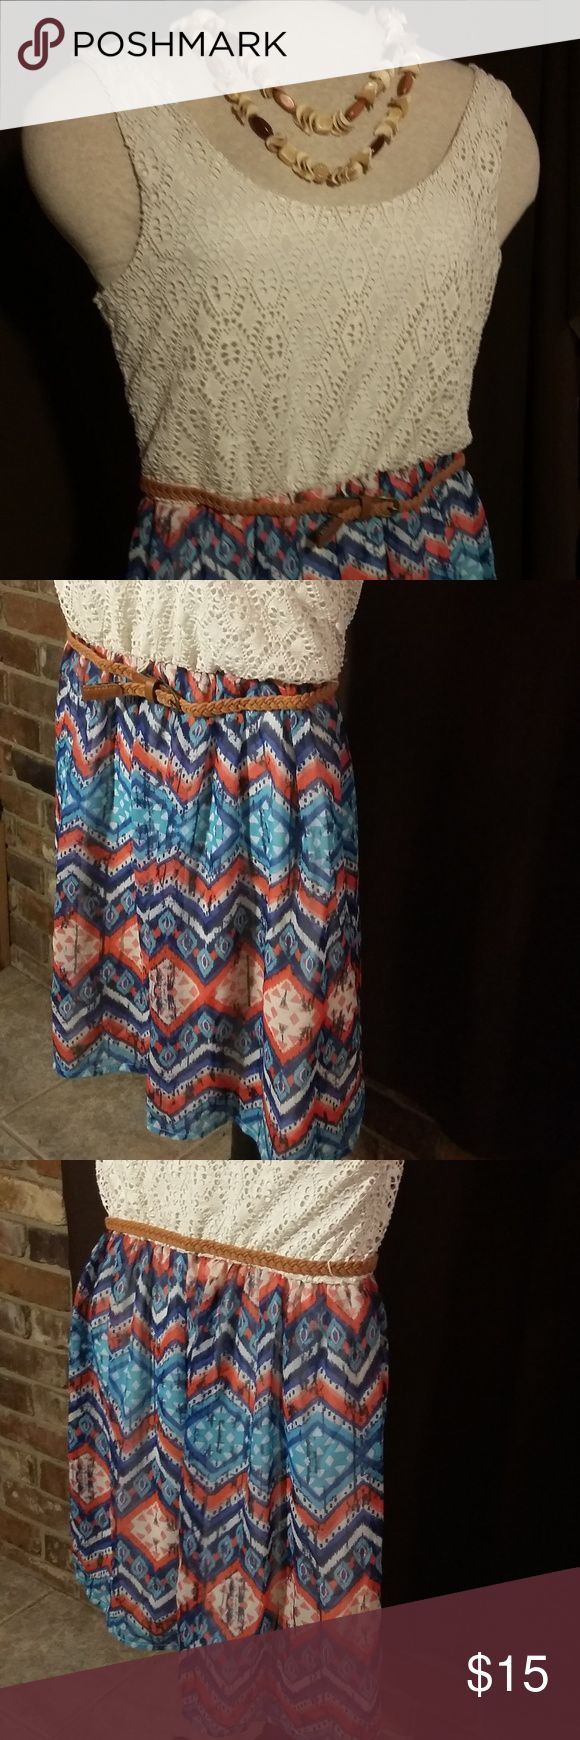 Red camel cream and multi-colored dress Sleeveless dress with lined, lace bodice, thin brown belt, and lined, patterned skirt.  Like brand new condition. Red Camel Dresses Midi